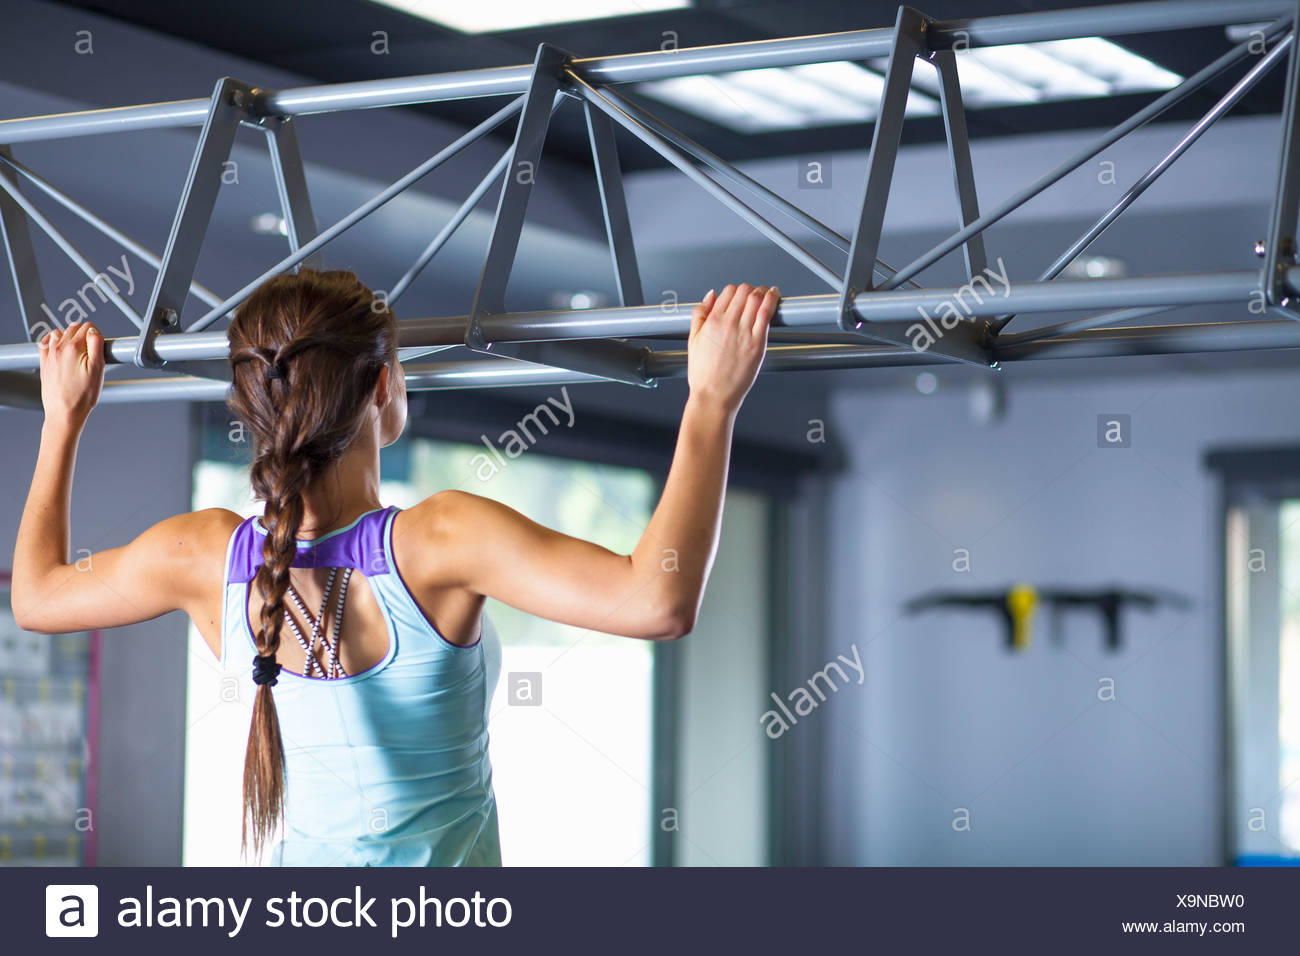 Young woman doing chin ups - Stock Image